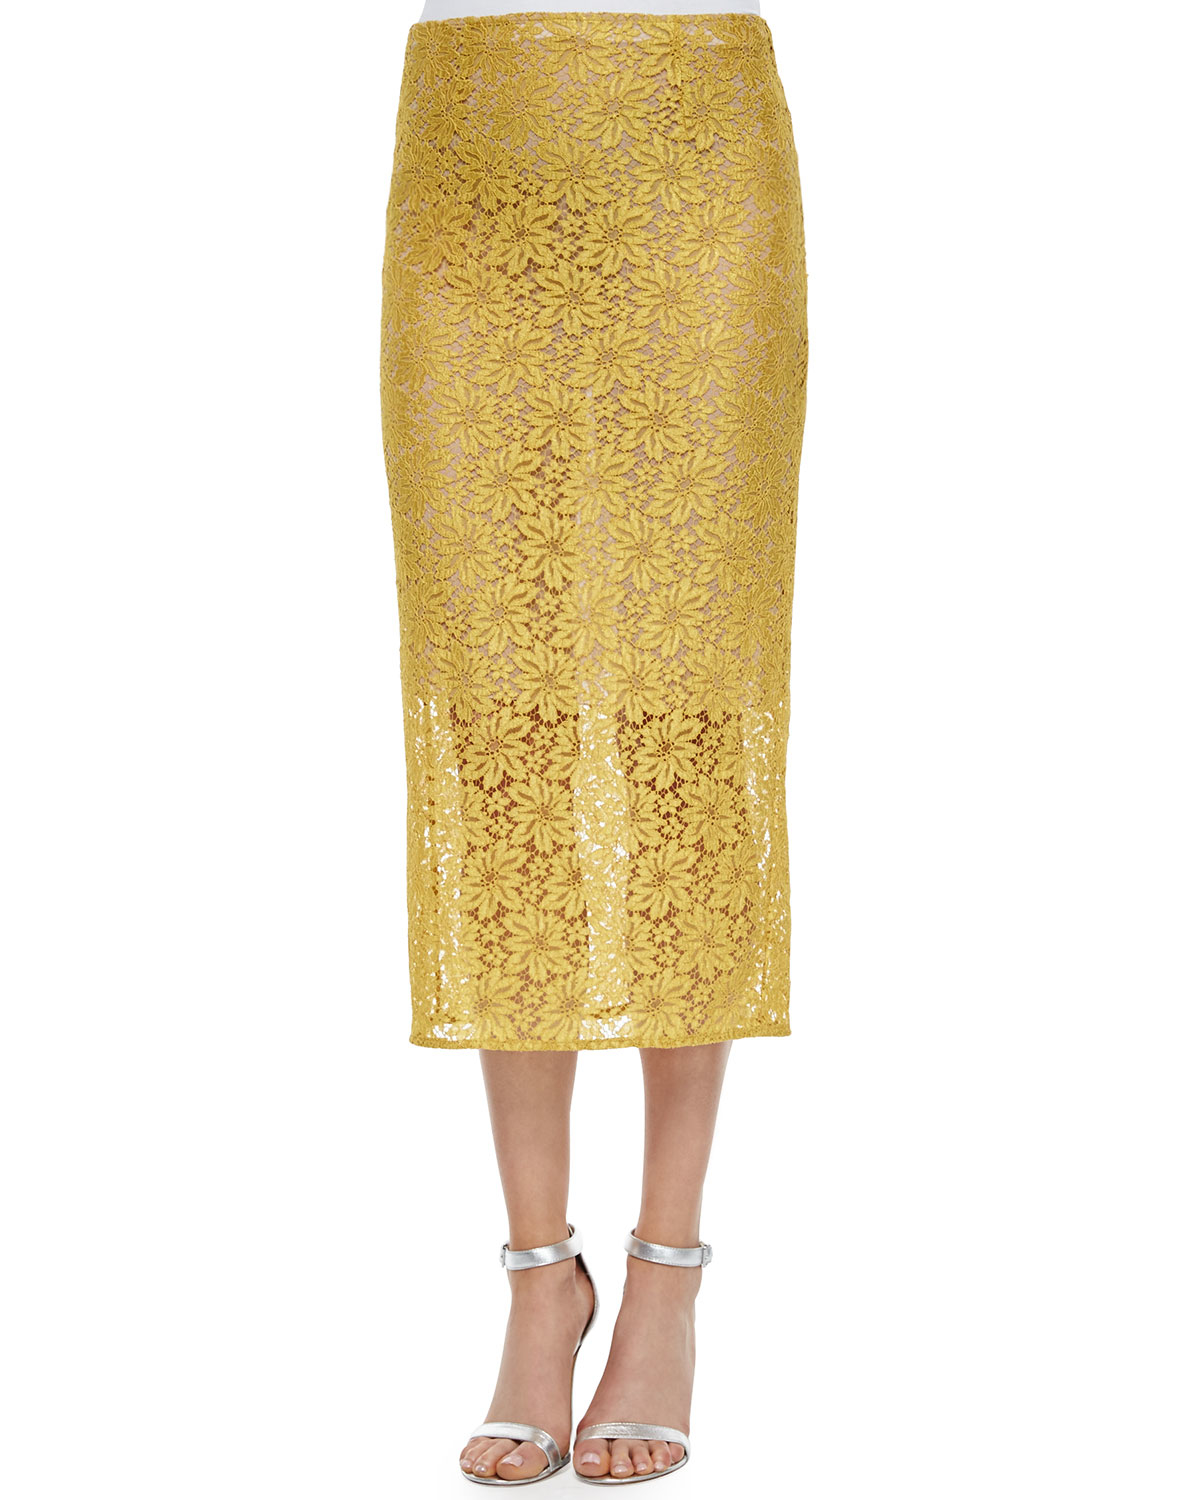 acne studios allover lace pencil skirt in yellow lyst